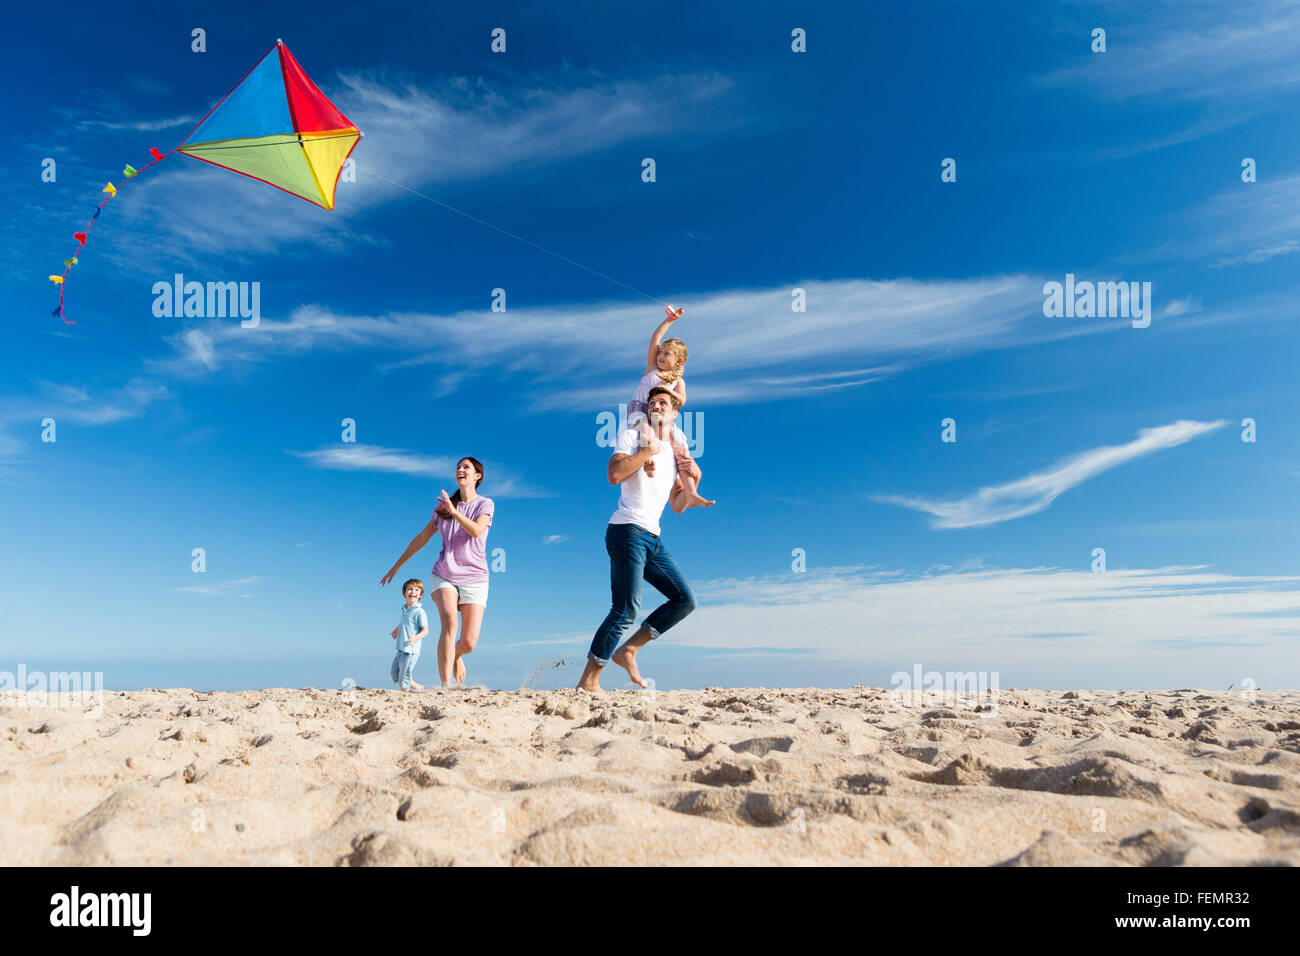 Famille de quatre flying a kite sur la plage. Photo Stock